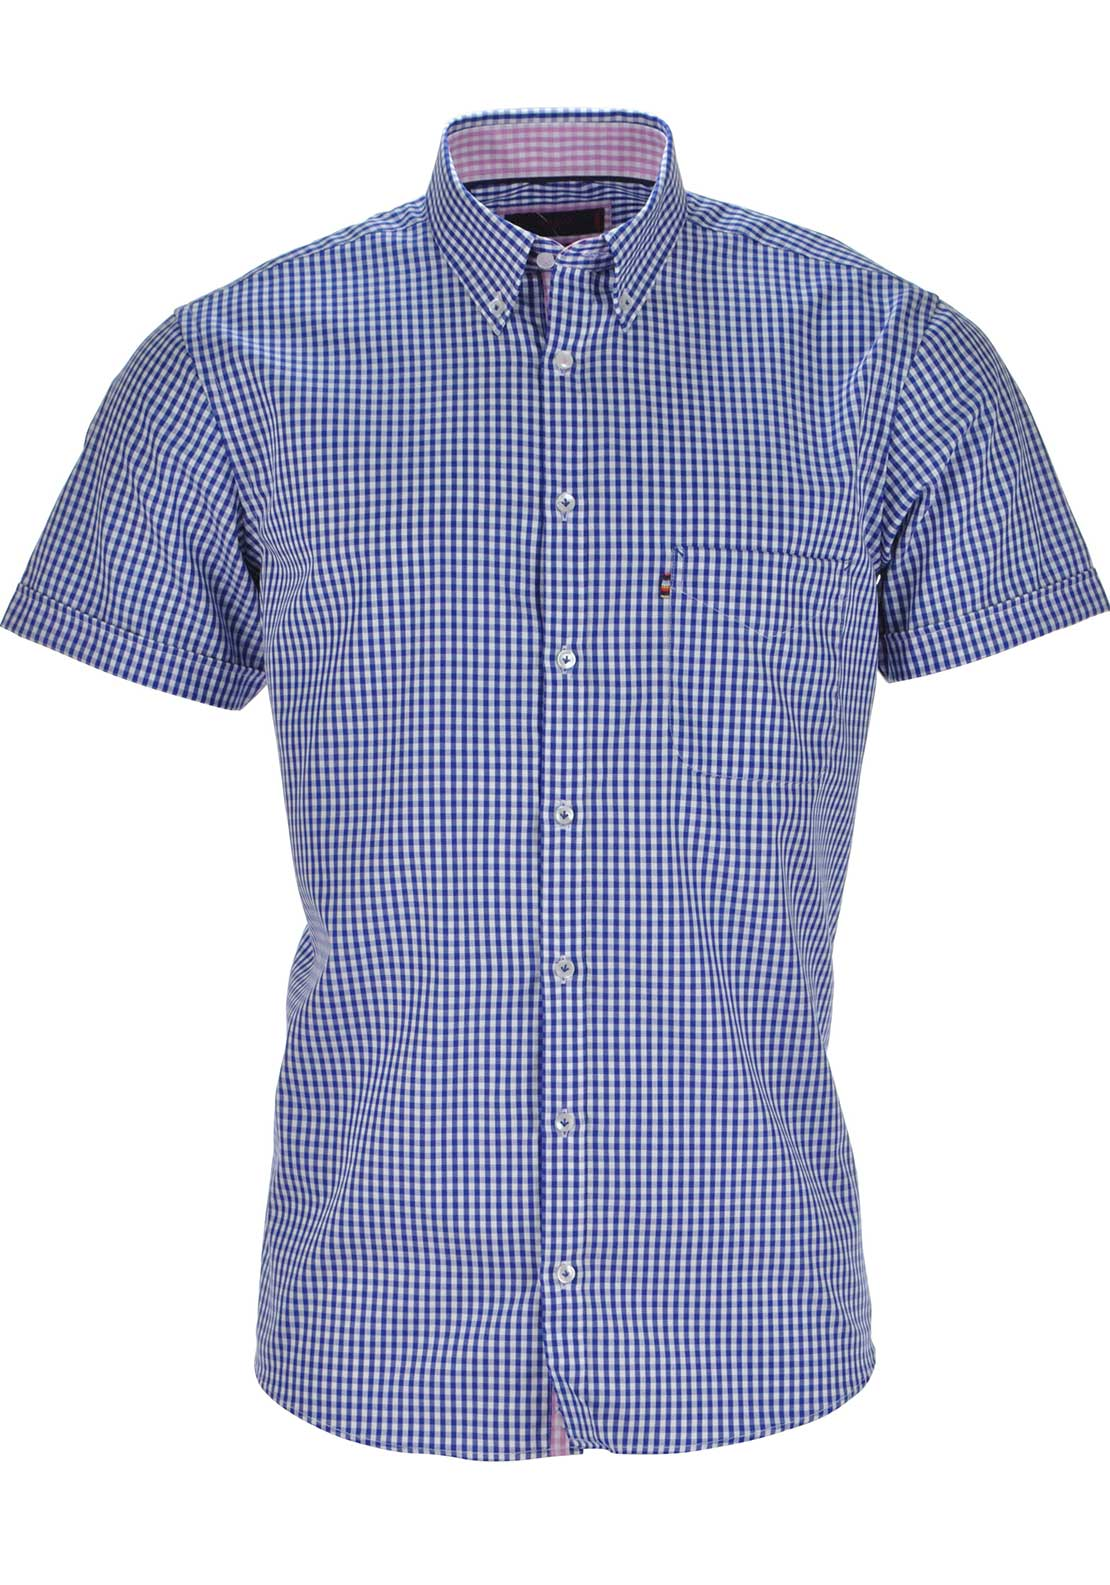 Andre Mens Fergus Short Sleeved Gingham Checked Shirt, Blue